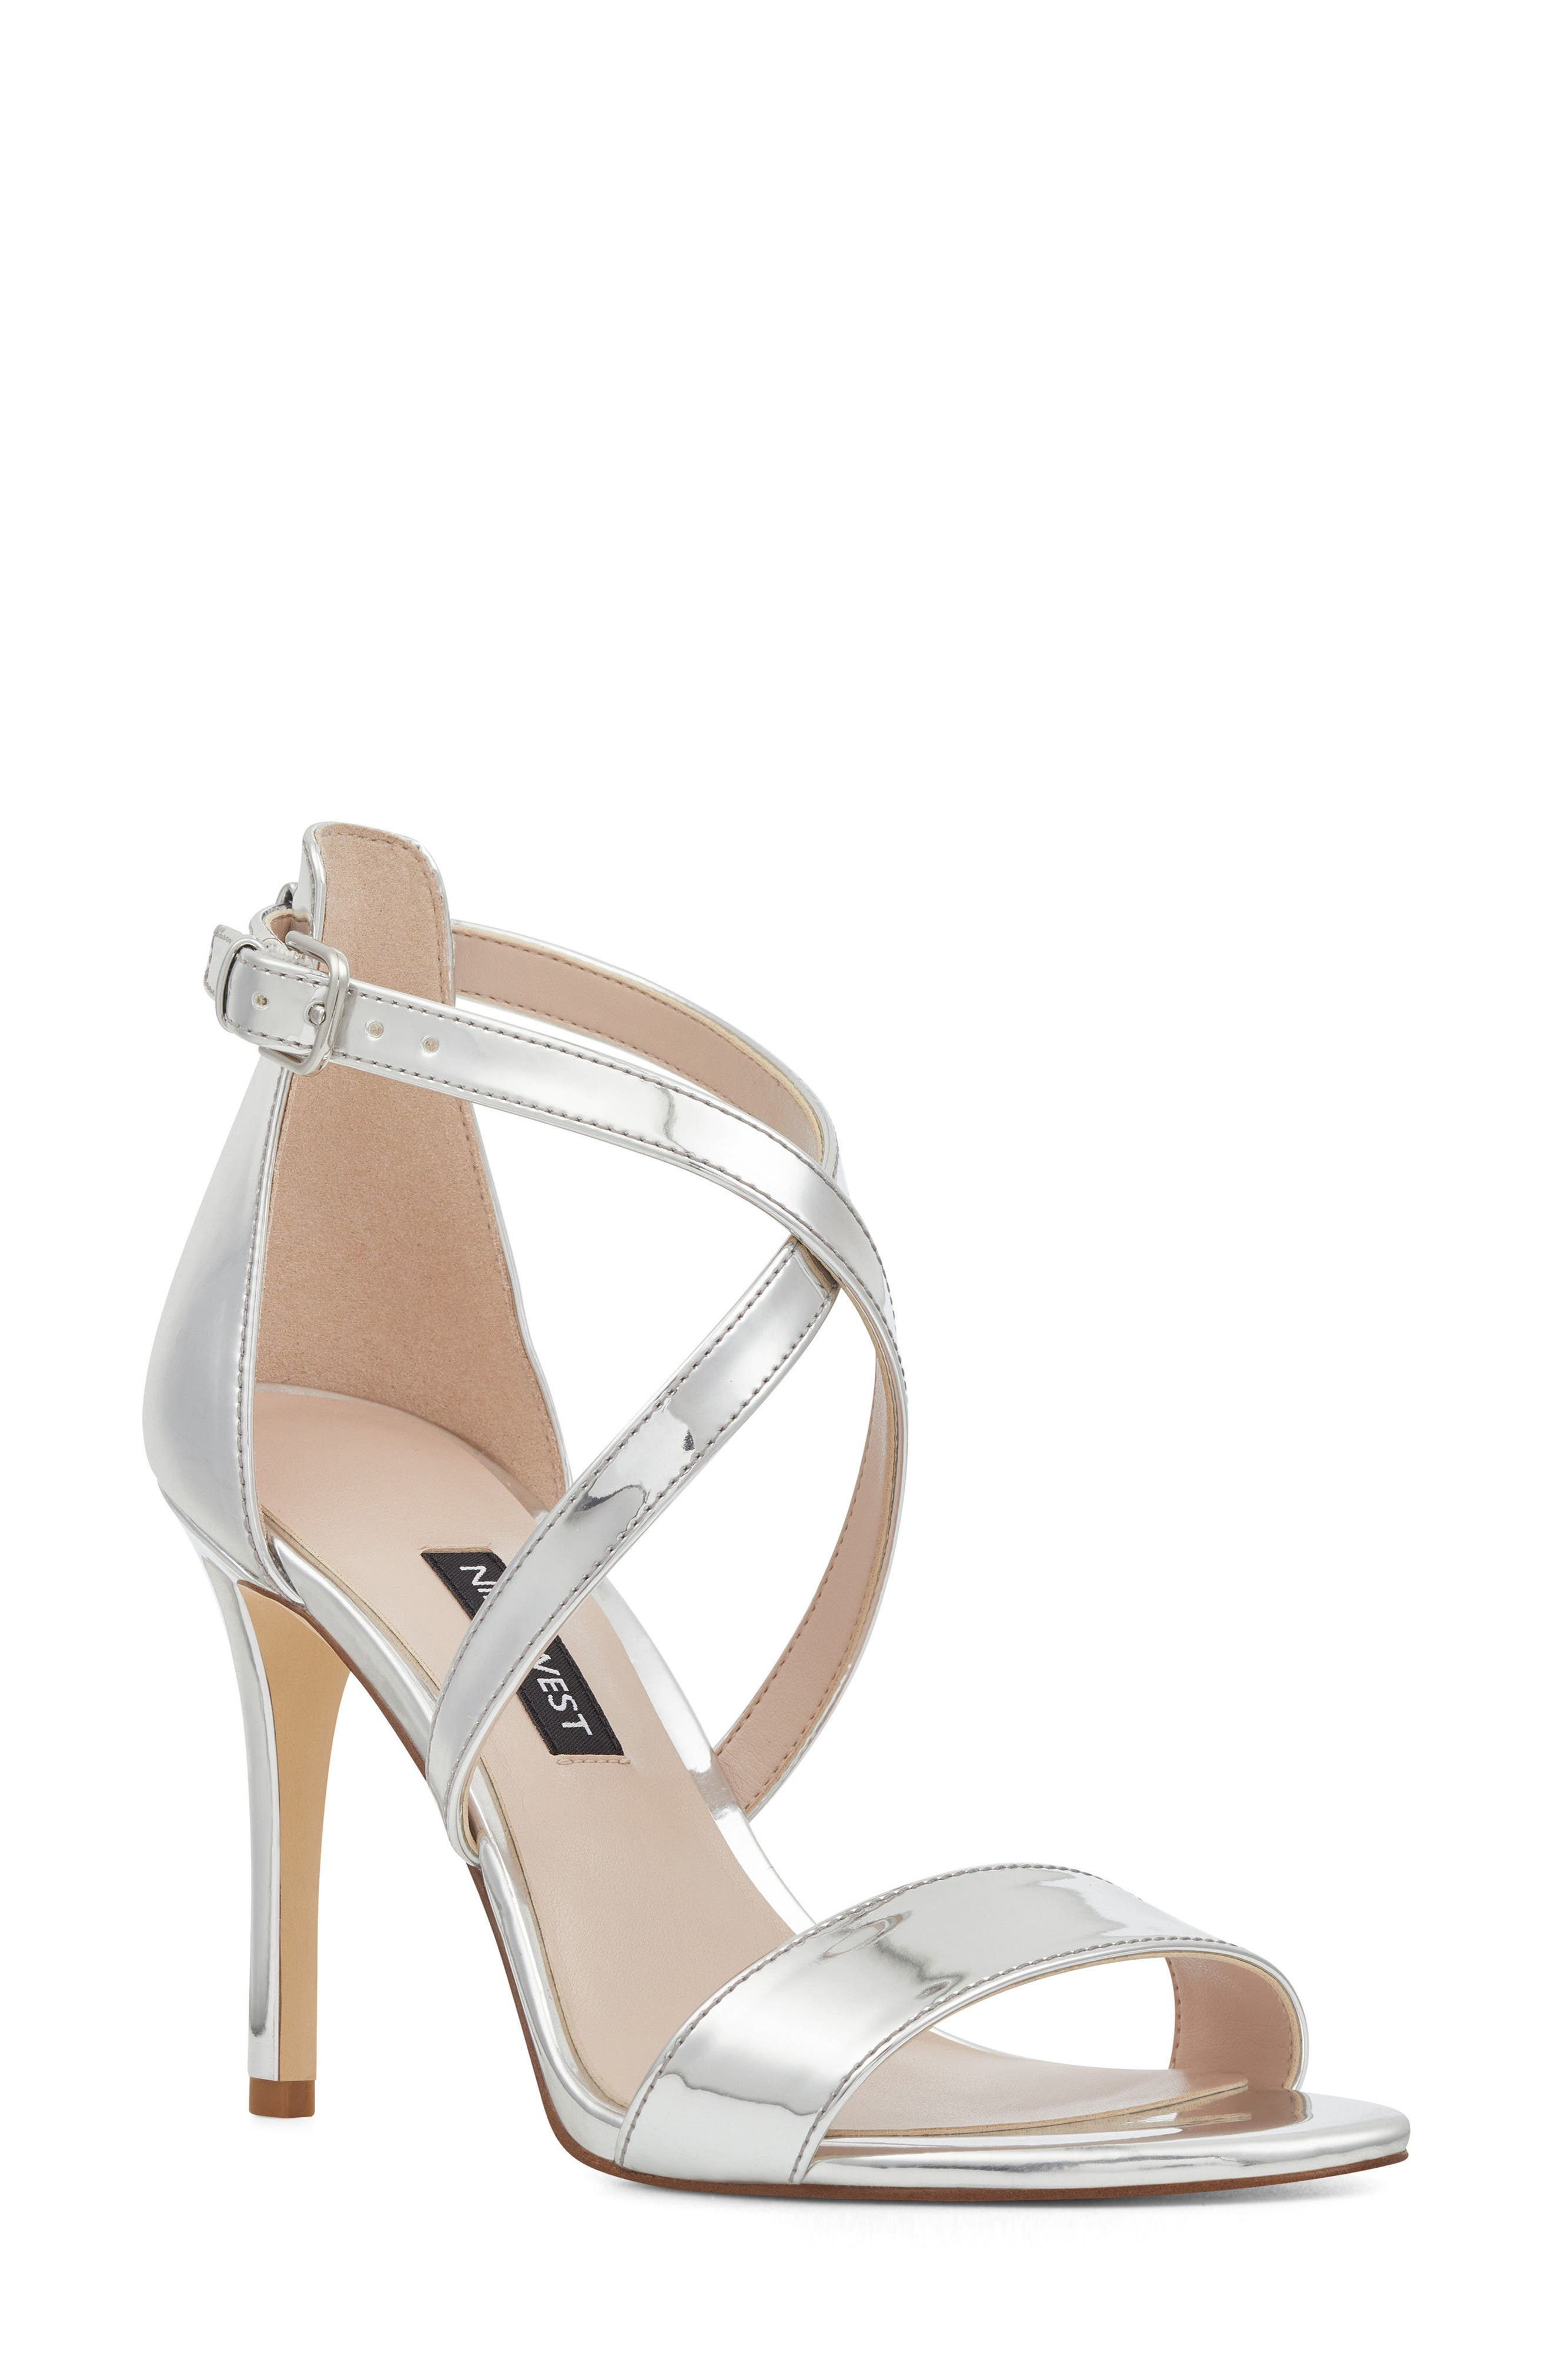 Alternate Image 1 Selected - Nine West Mydebut Strappy Sandal (Women)